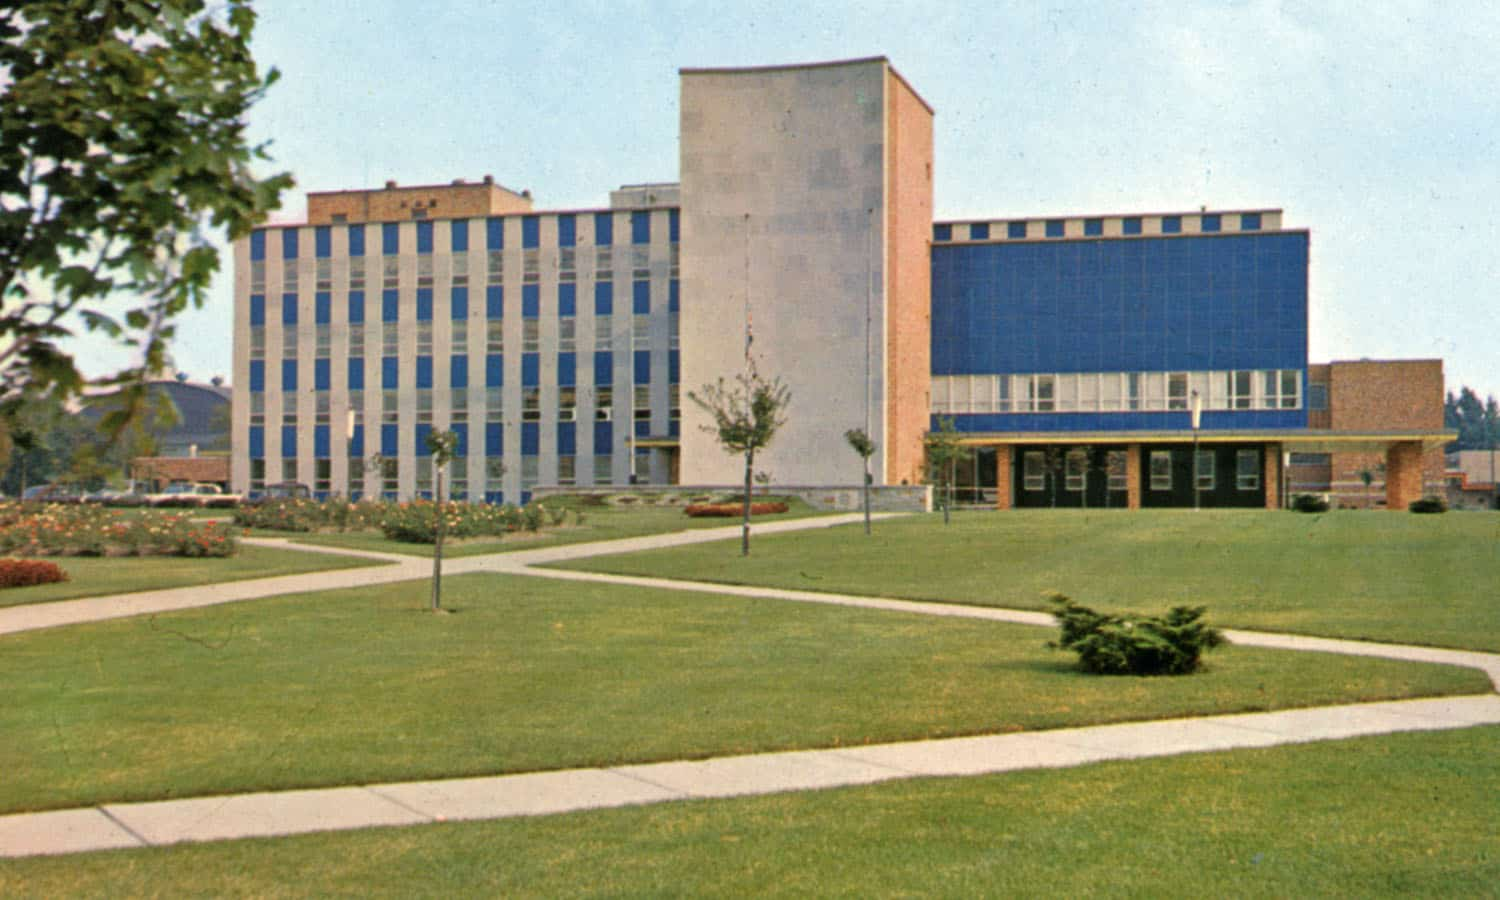 Windsor, Ontario. The modern new City Hall and beautifully landscaped surroundings (1956 - Grant-Mann Lithographers, 1956. http://swoda.uwindsor.ca/node/811)